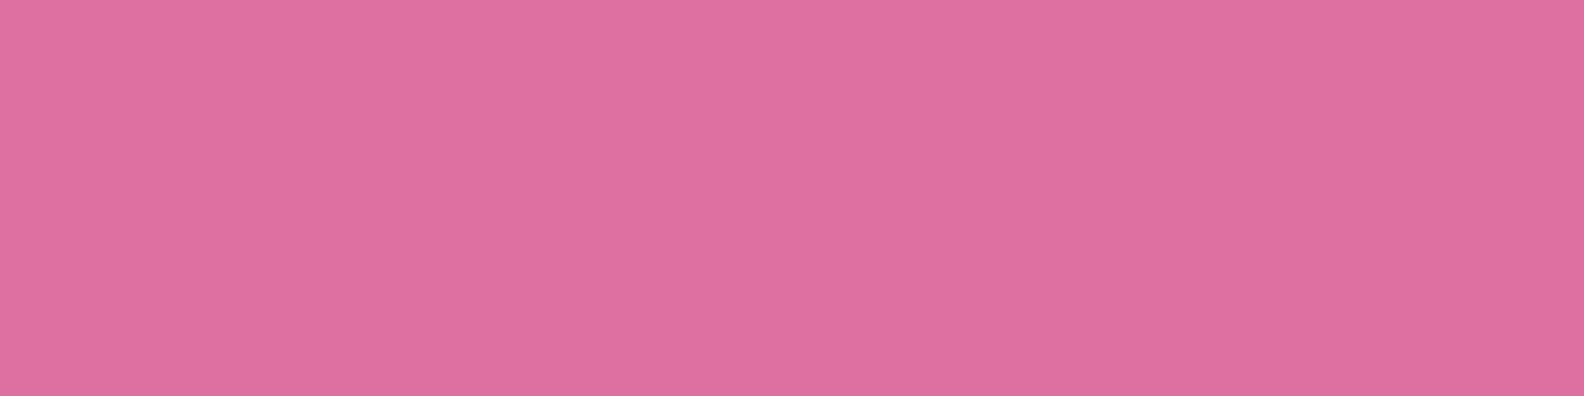 1584x396 China Pink Solid Color Background